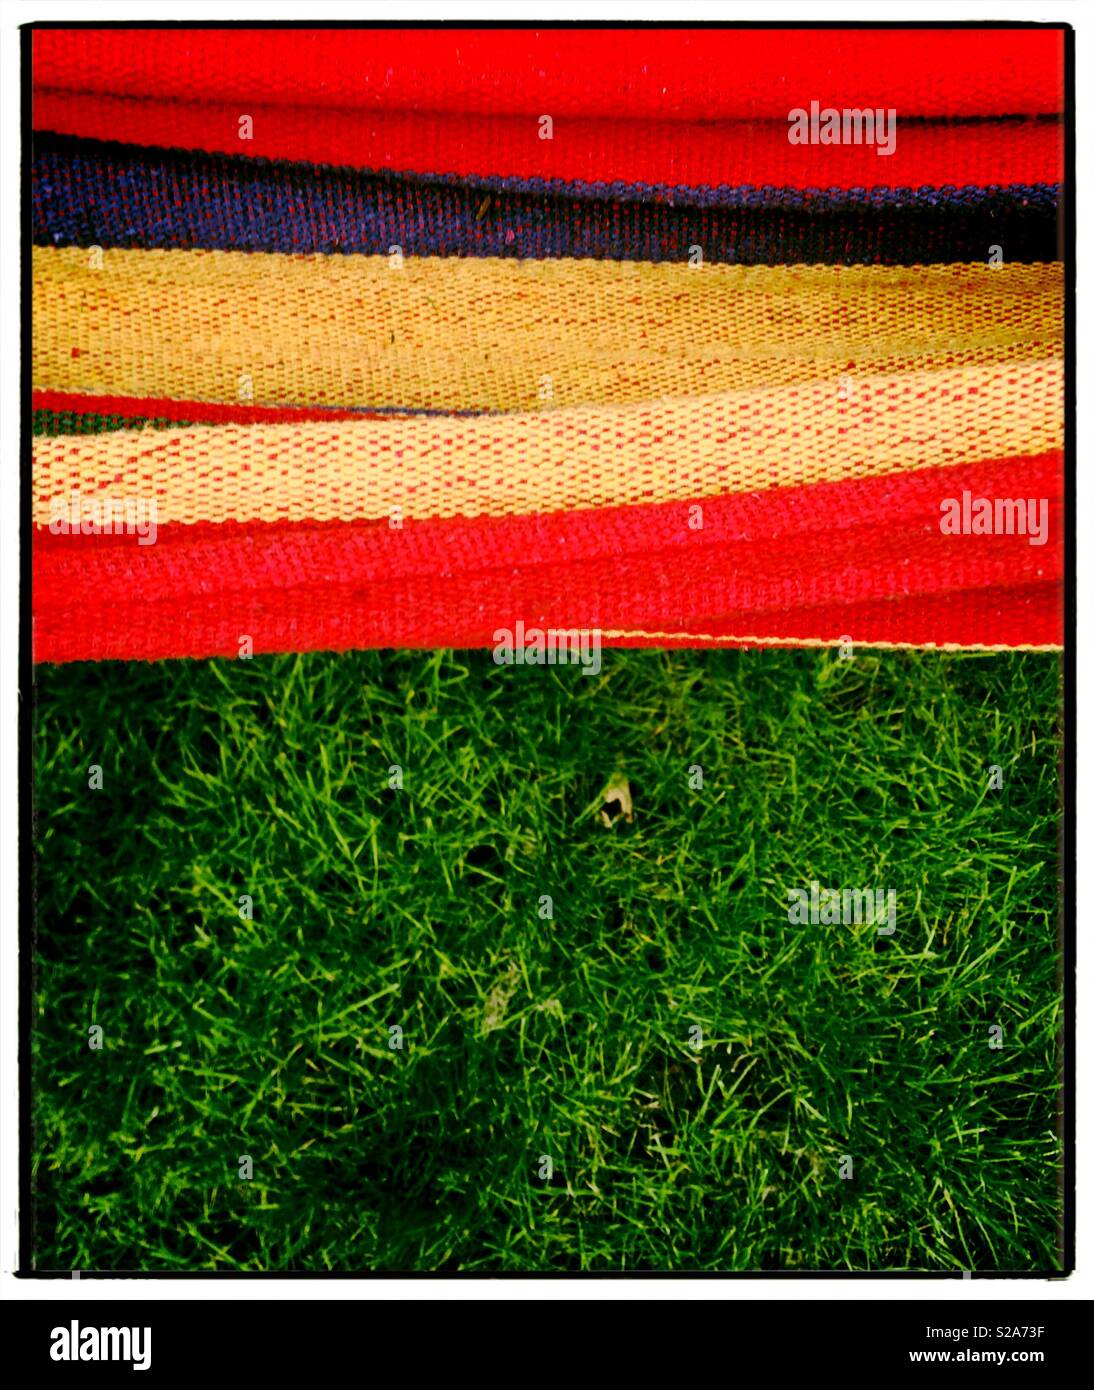 Colorful Stripy canvas with green lawn. - Stock Image